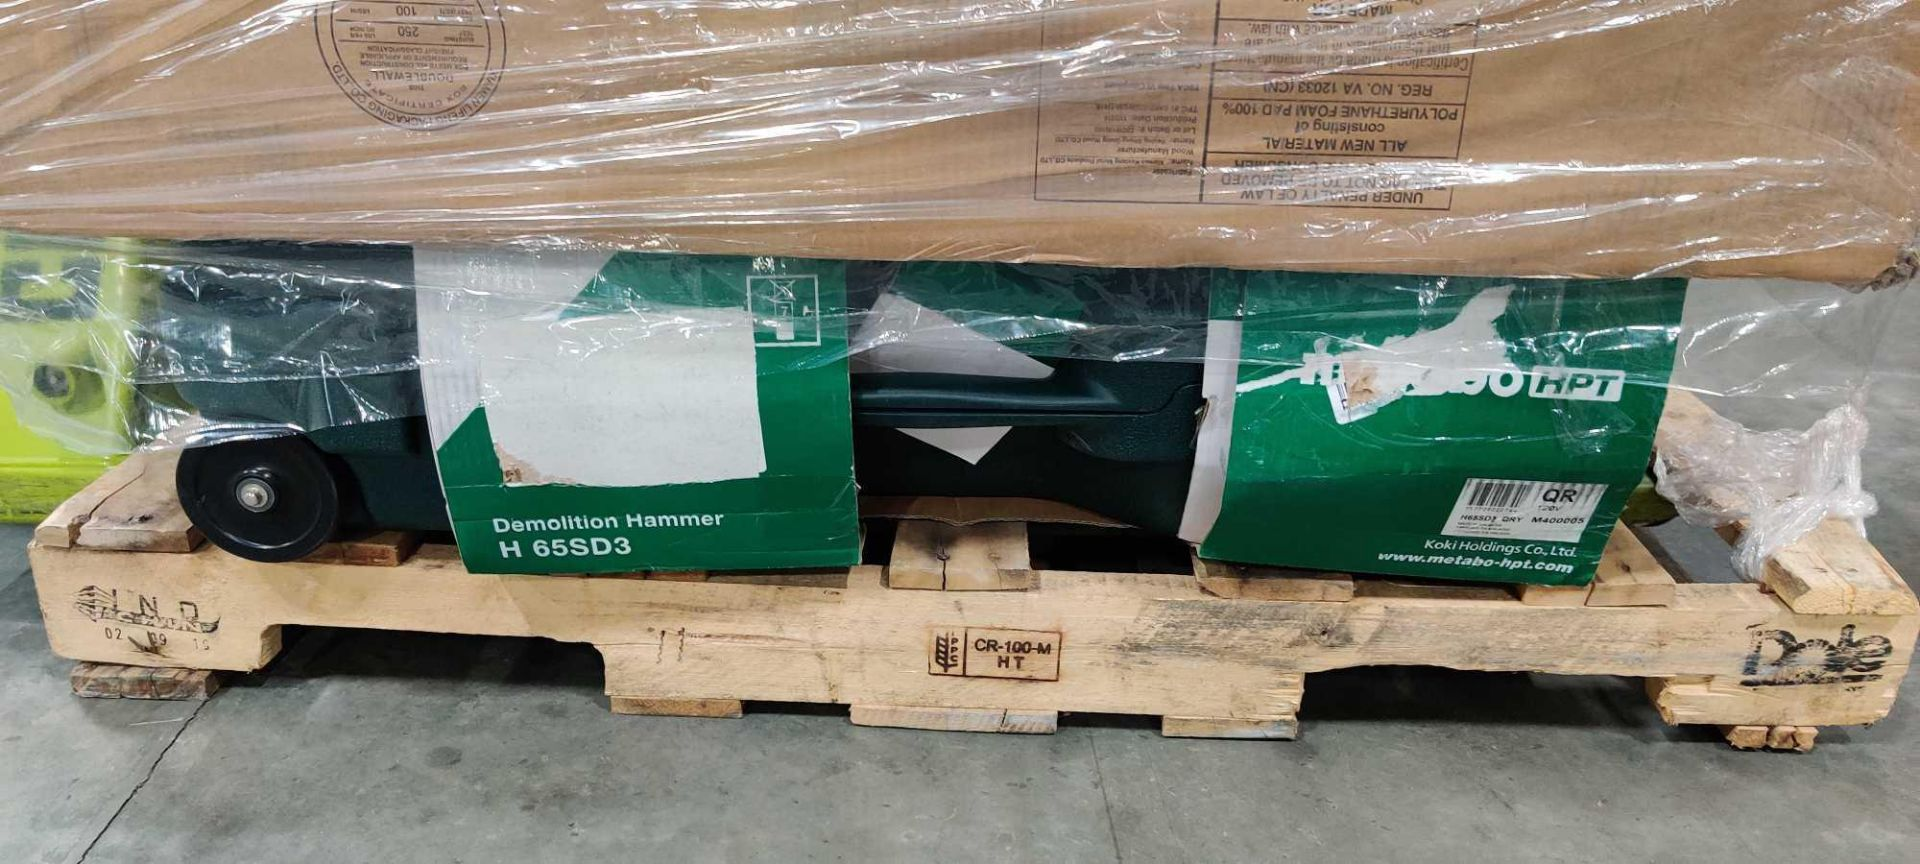 Single Pallet - Image 18 of 18